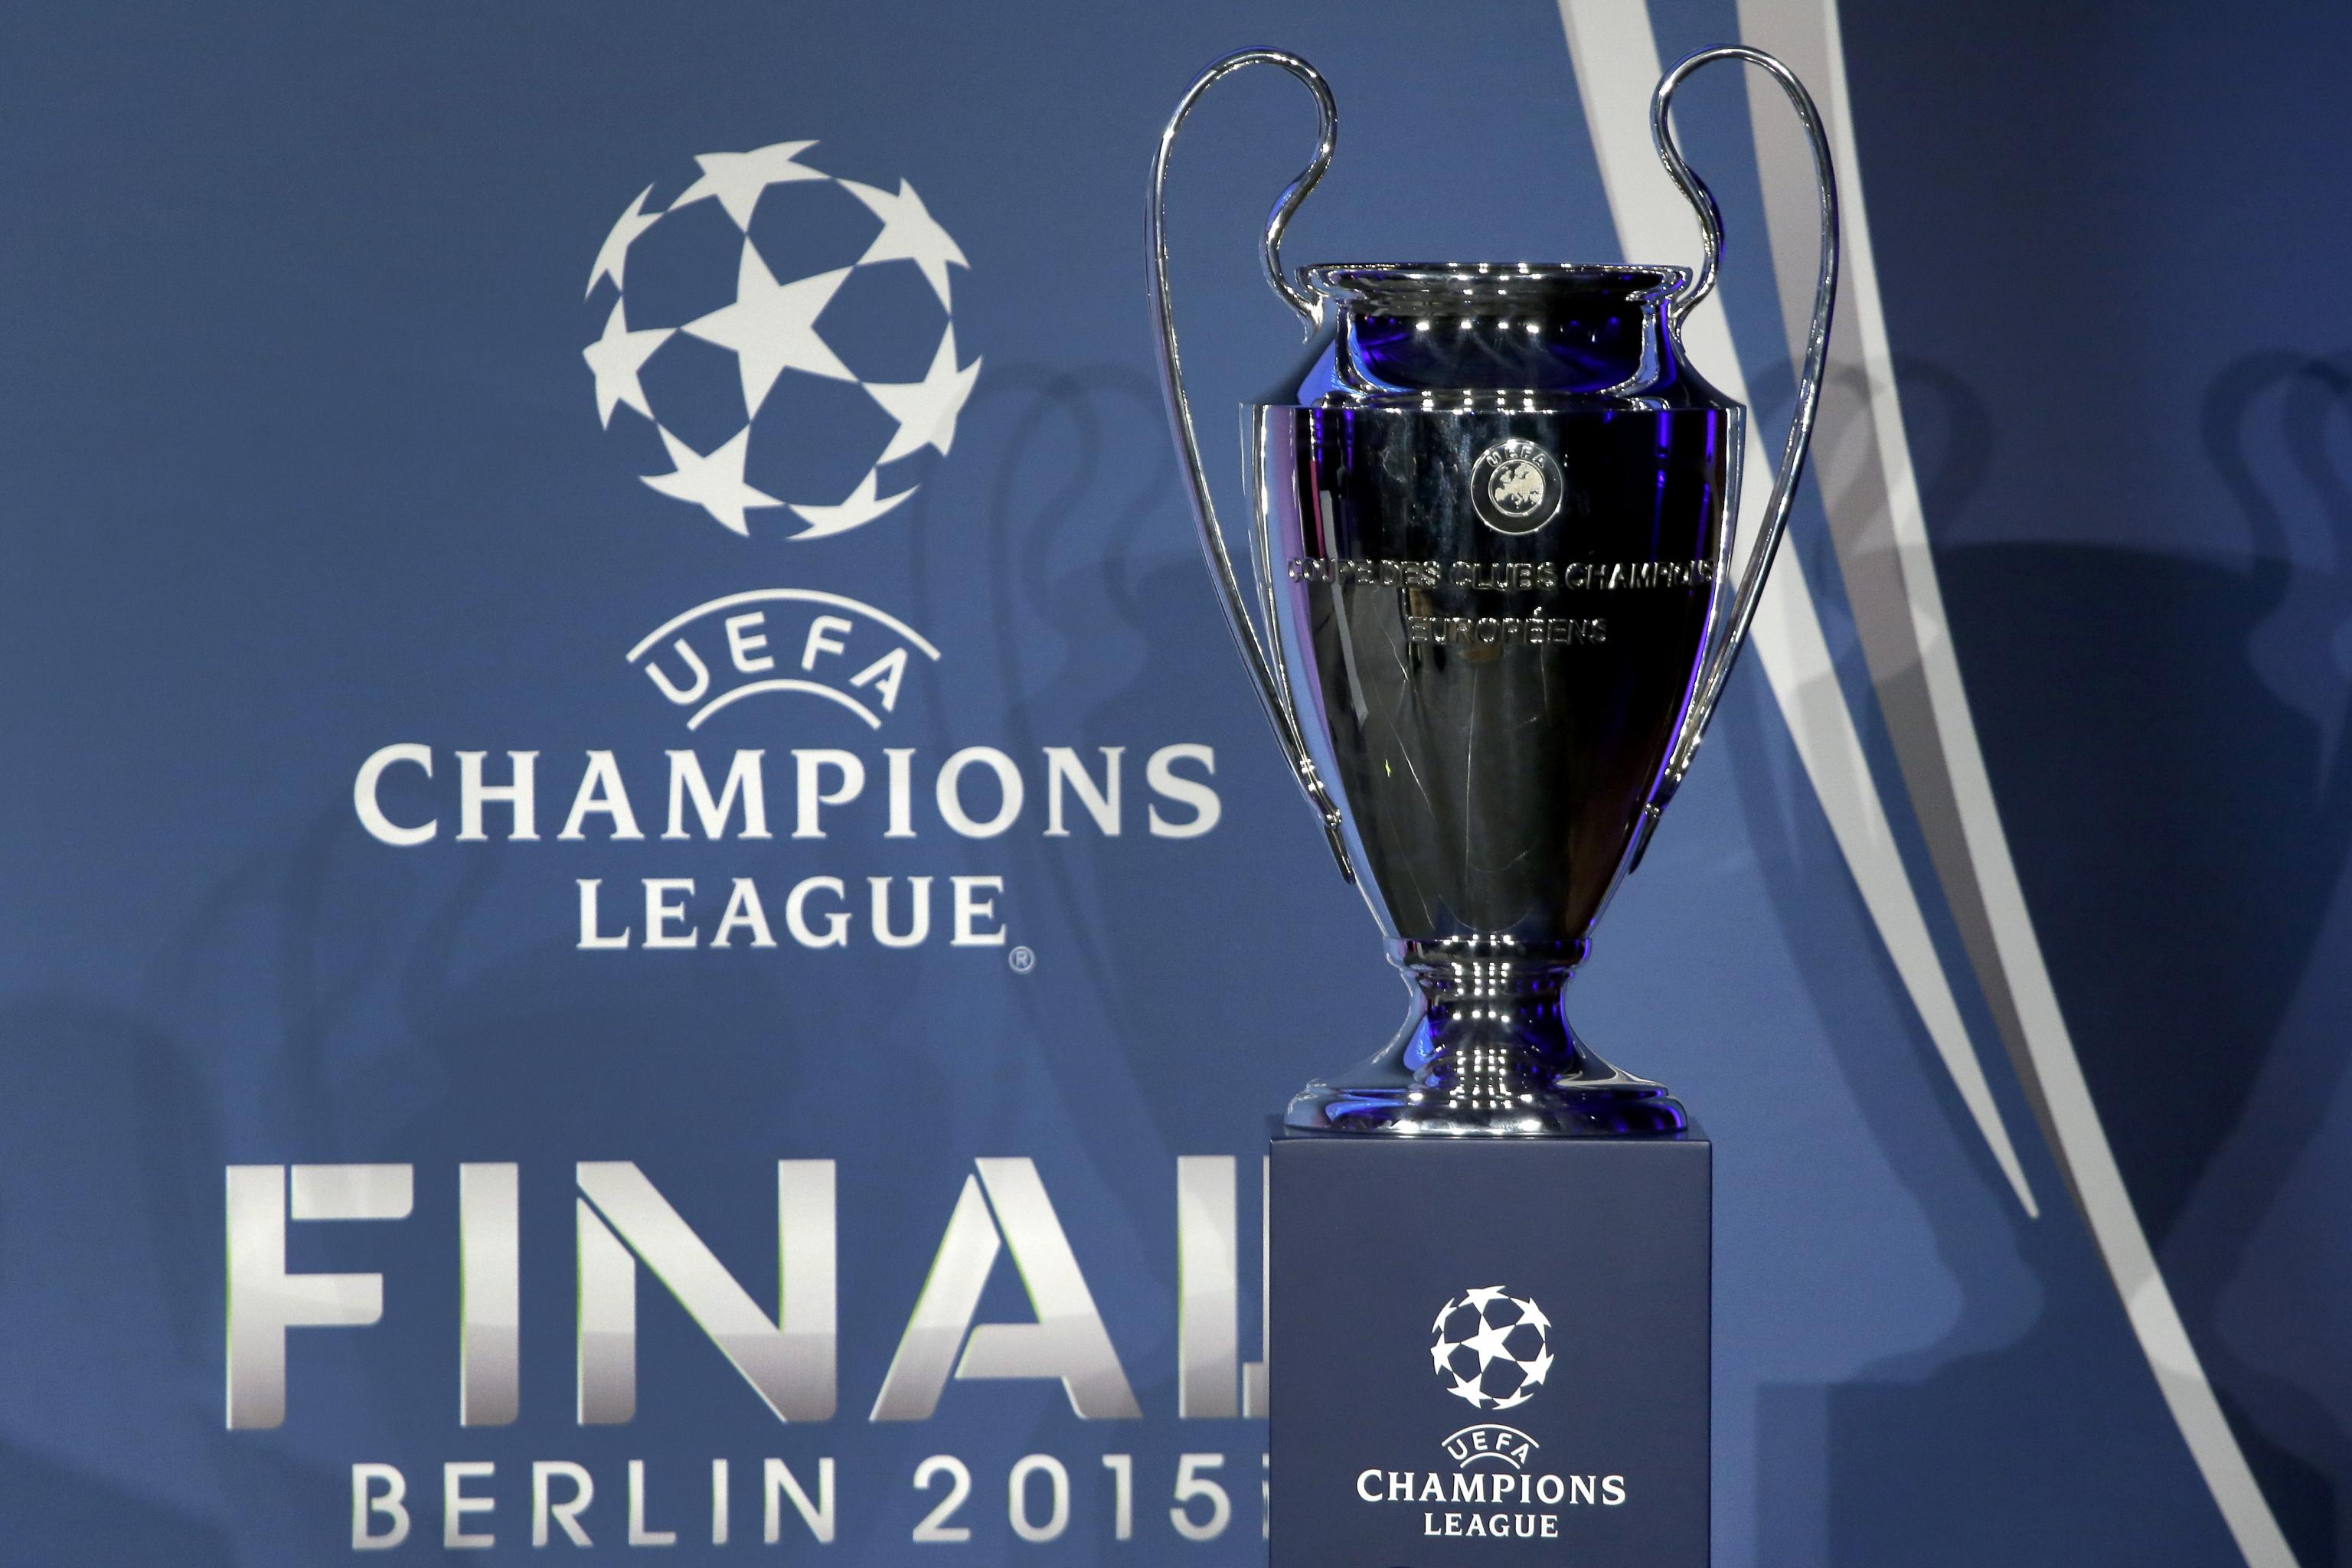 Juventus Vs Barcelona Starting Xis Team News From 2015 Champions League Final Bleacher Report Latest News Videos And Highlights